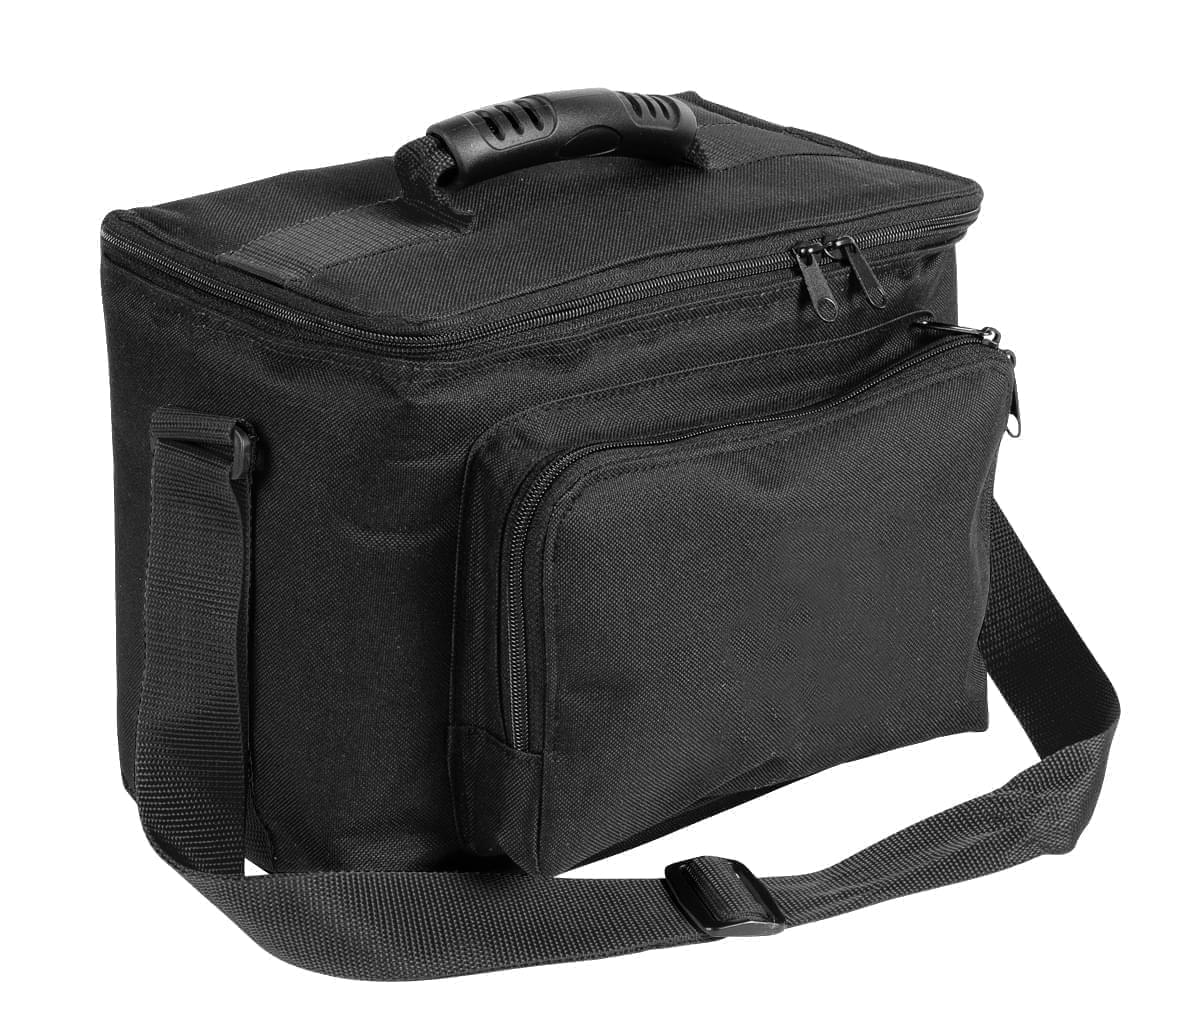 USA Made Nylon Poly Lunch Coolers, Black-Black, 11001161-AOR